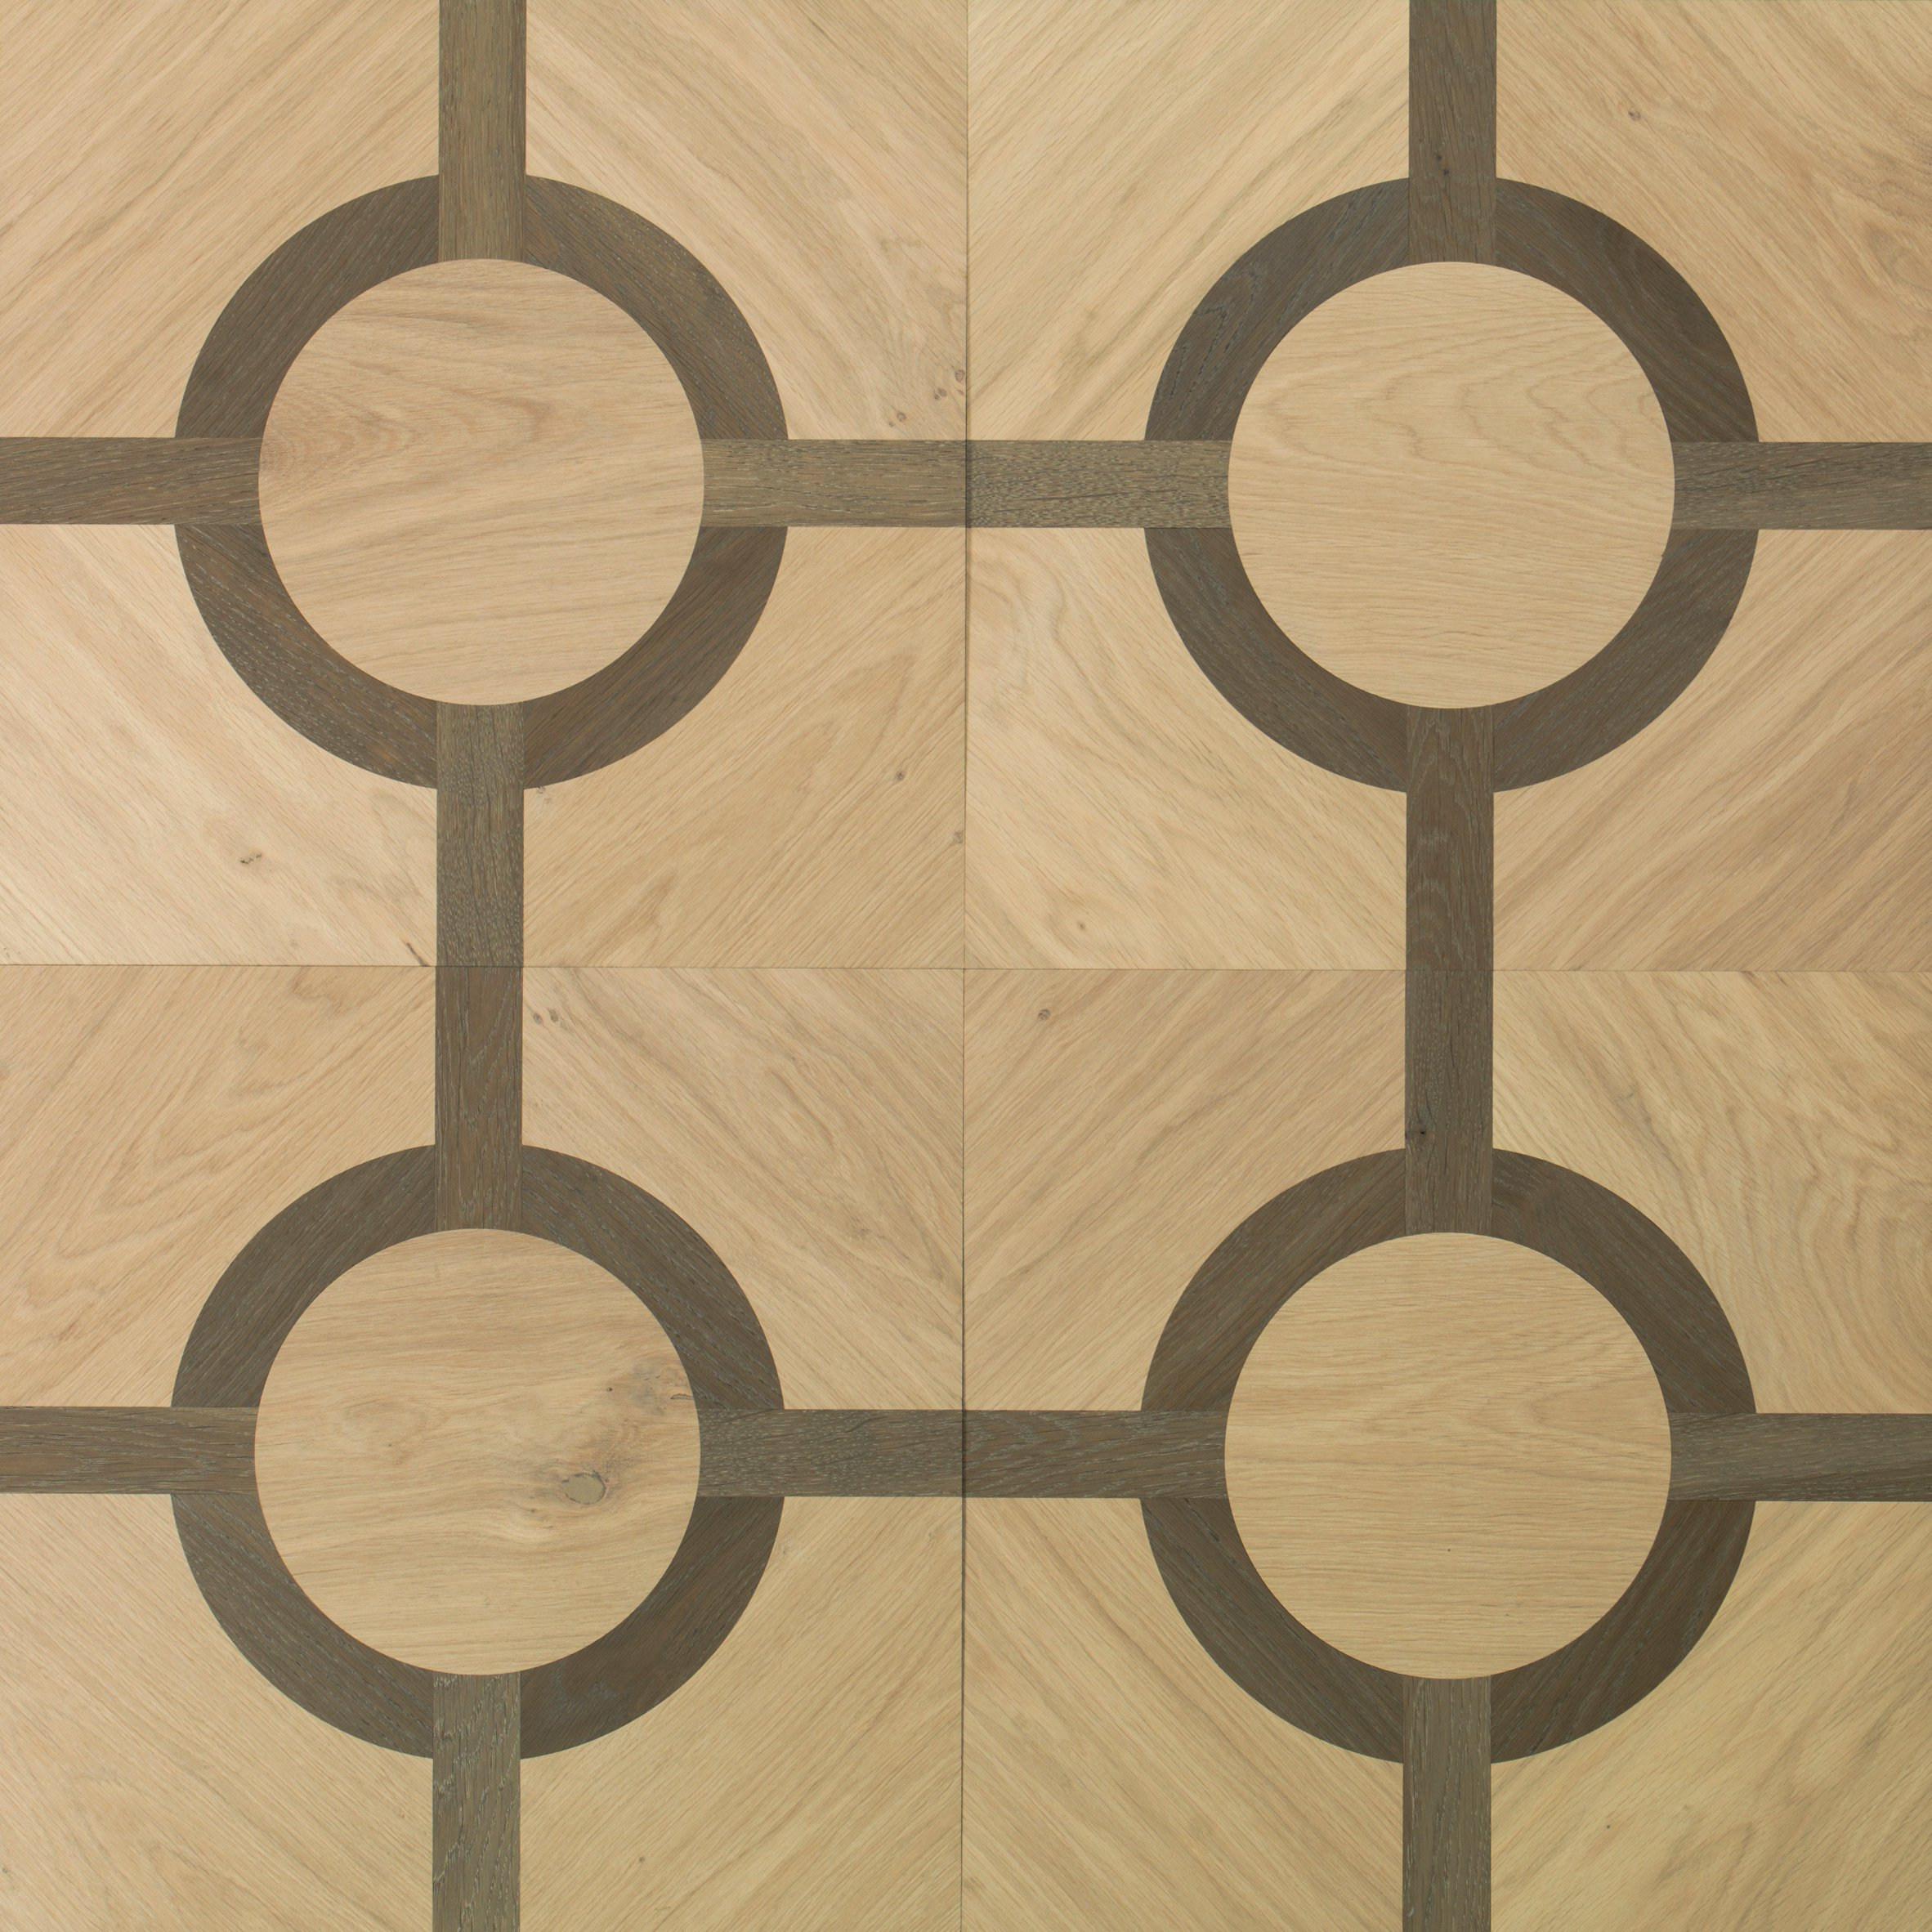 Geometric Tile Designs